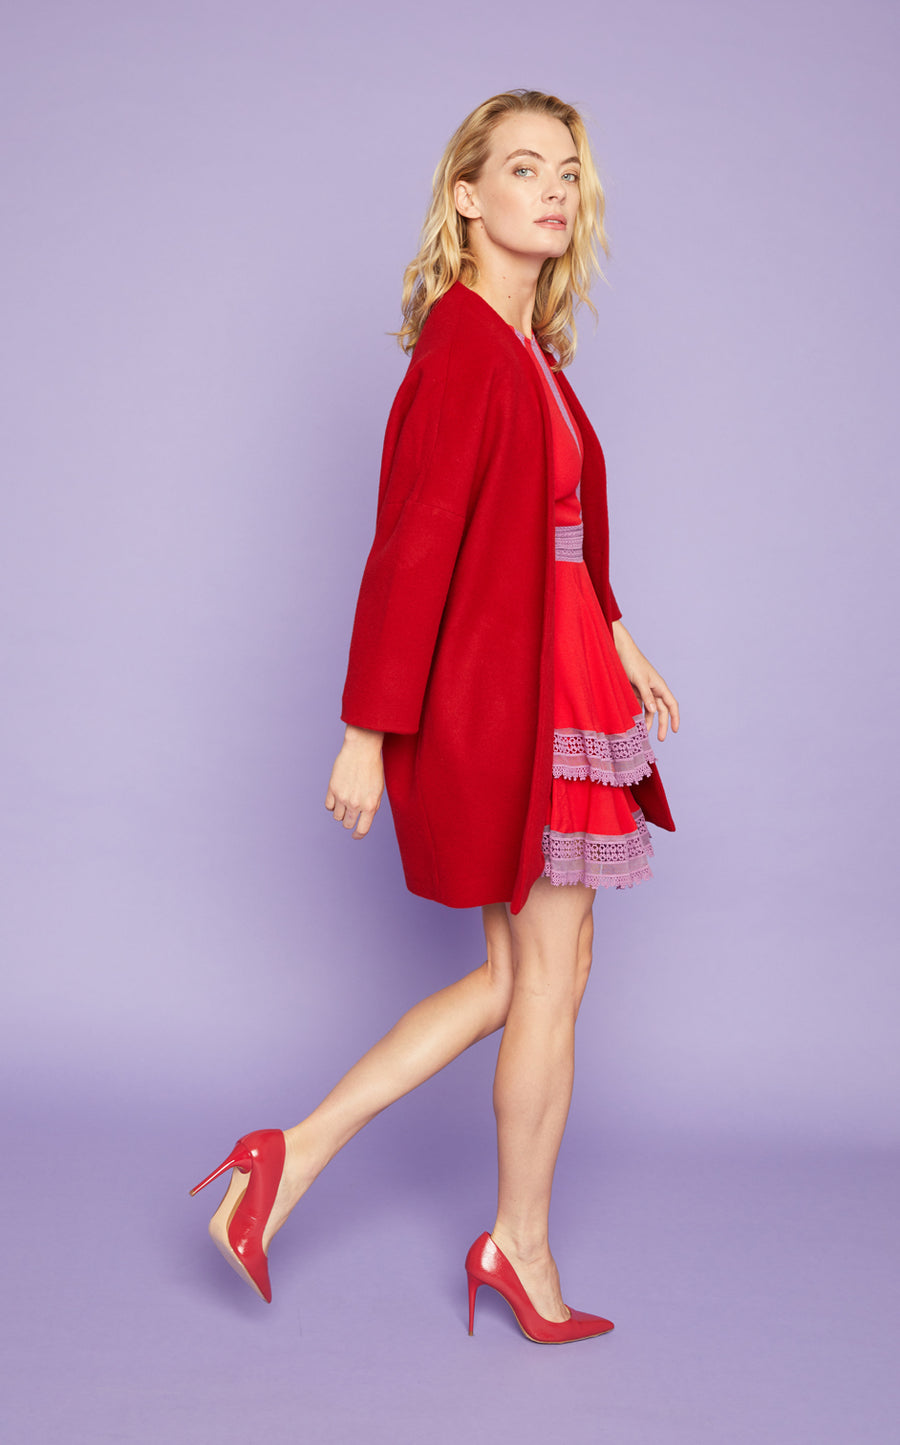 Kimono GT in Lipstick Red - Only Size Medium Left